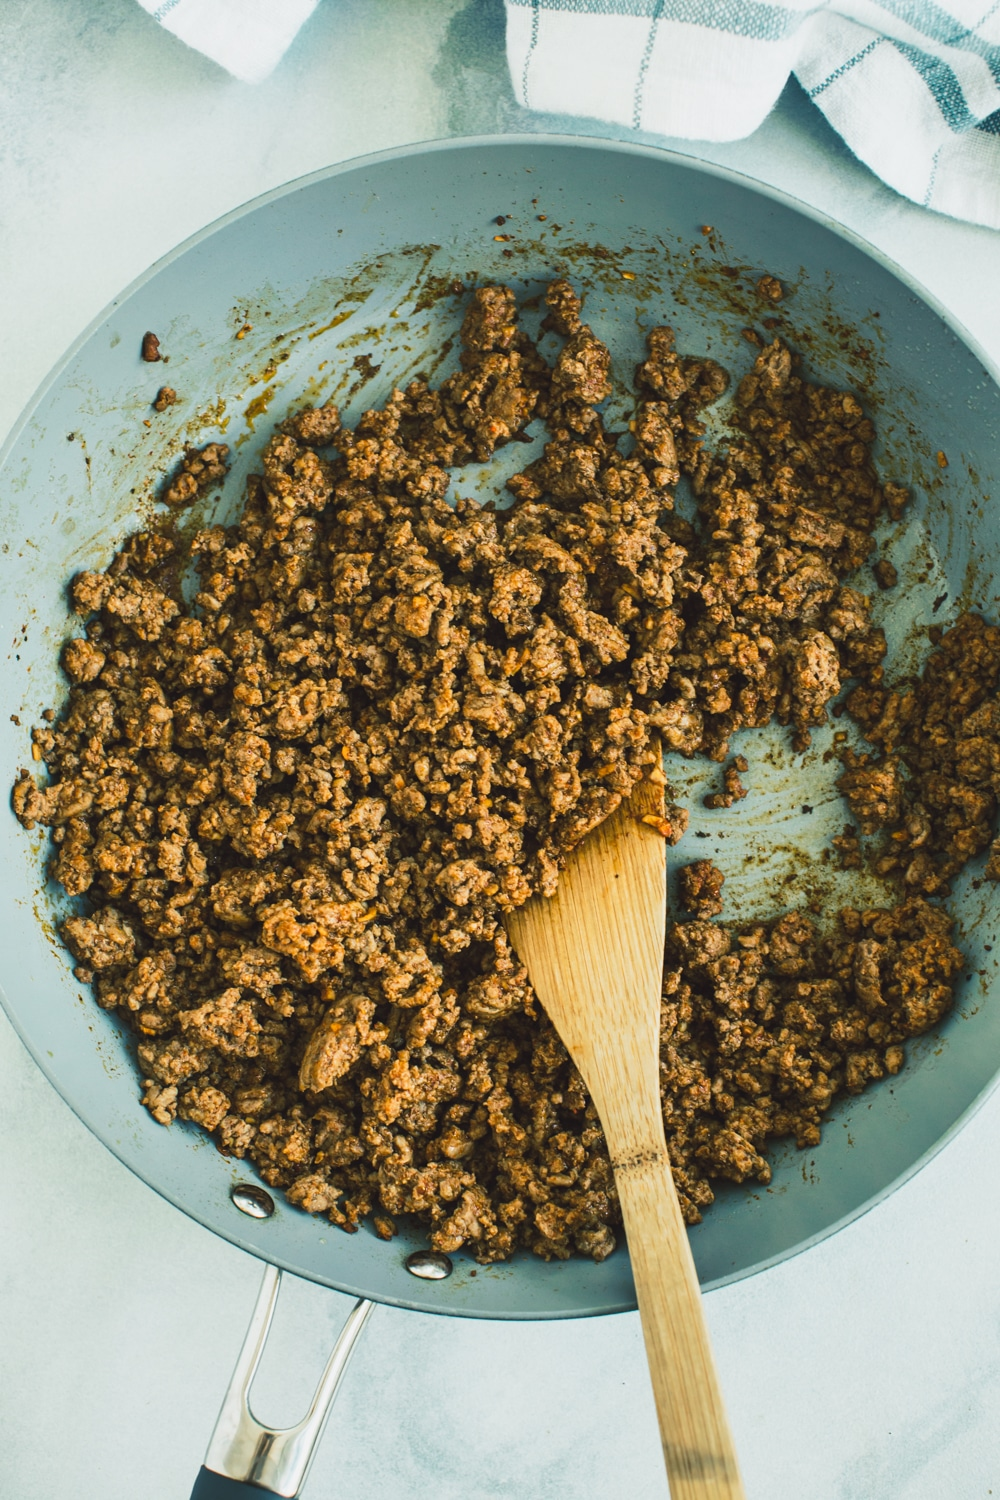 Cook the ground beef in a large skillet by breaking it apart to brown.